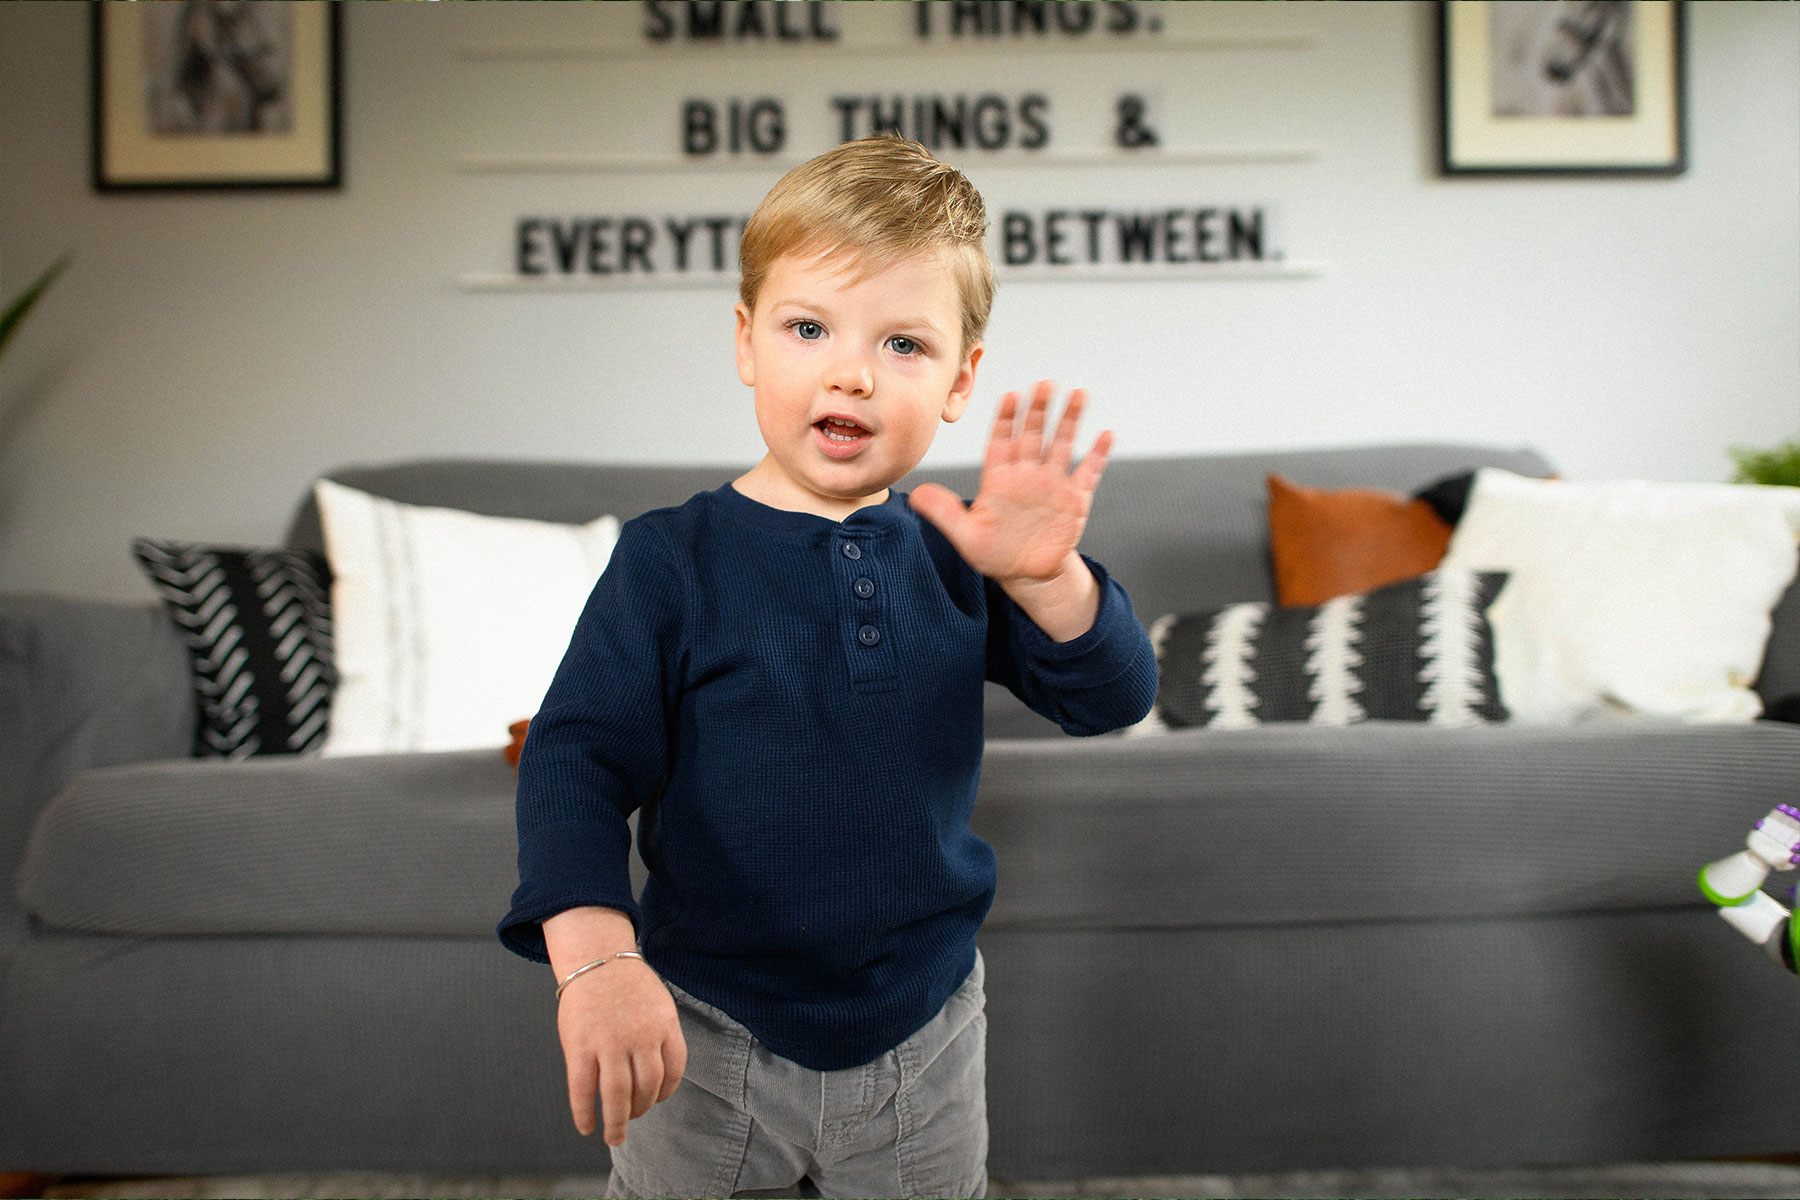 Rory McCamish, a white toddler with blonde hair, blue eyes, and a round face, is standing in his living room waving. He is wearing a navy blue shirt and grey pants.